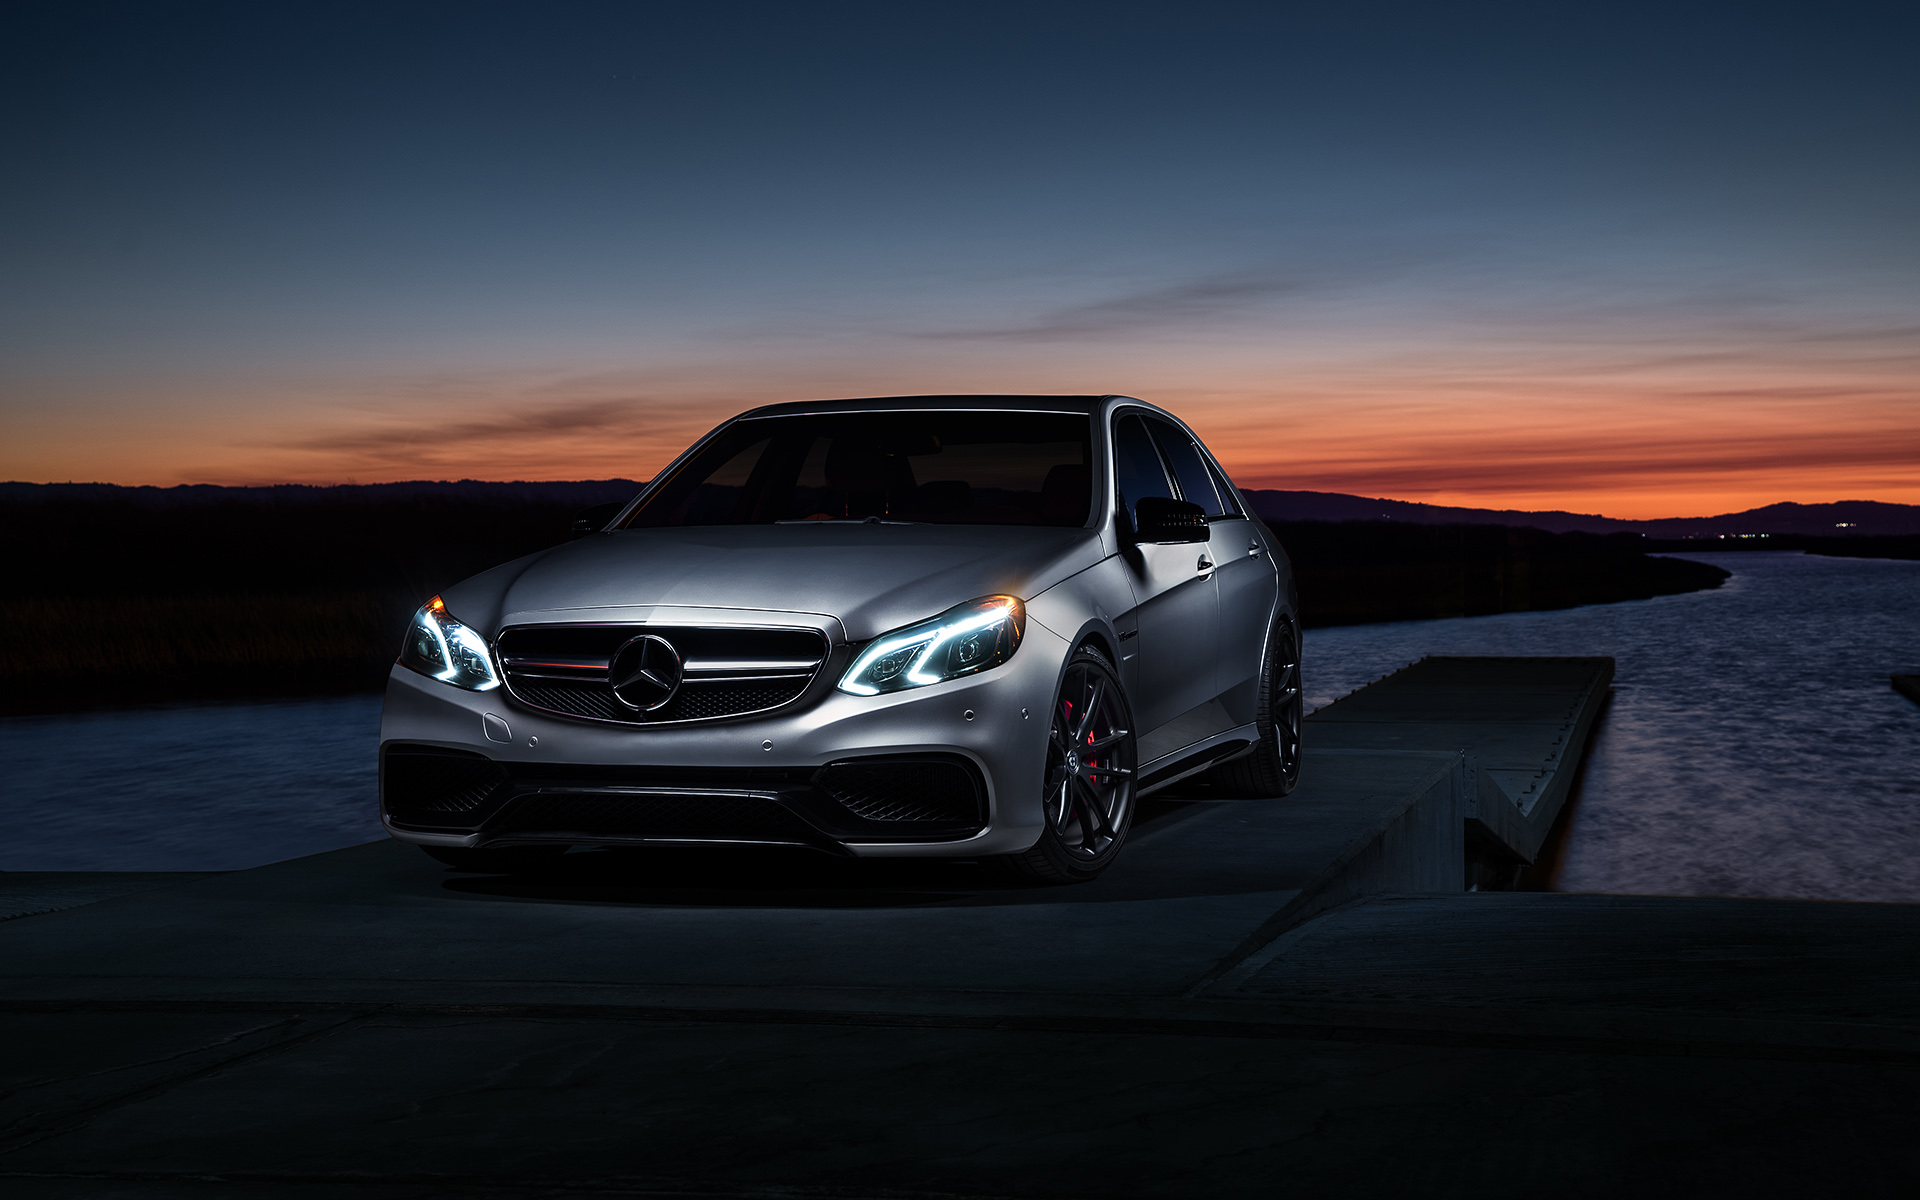 Mercedes benz e63 amg s wallpaper hd car wallpapers id for Mercedes benz e 63 amg